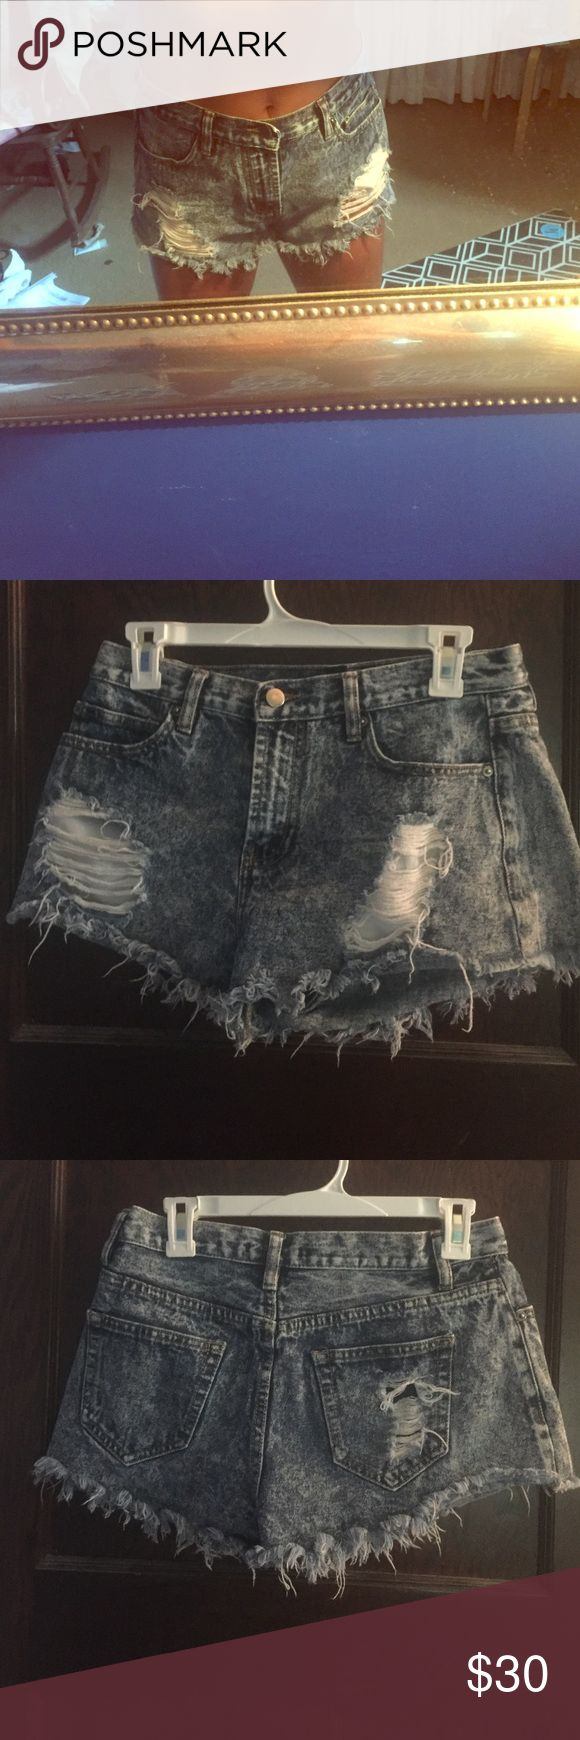 Size 28. Distressed acid wash jean shorts I bought these at forever 21 and wore them all the time! Amazingly cute and still in great condition :) Forever 21 Shorts Jean Shorts